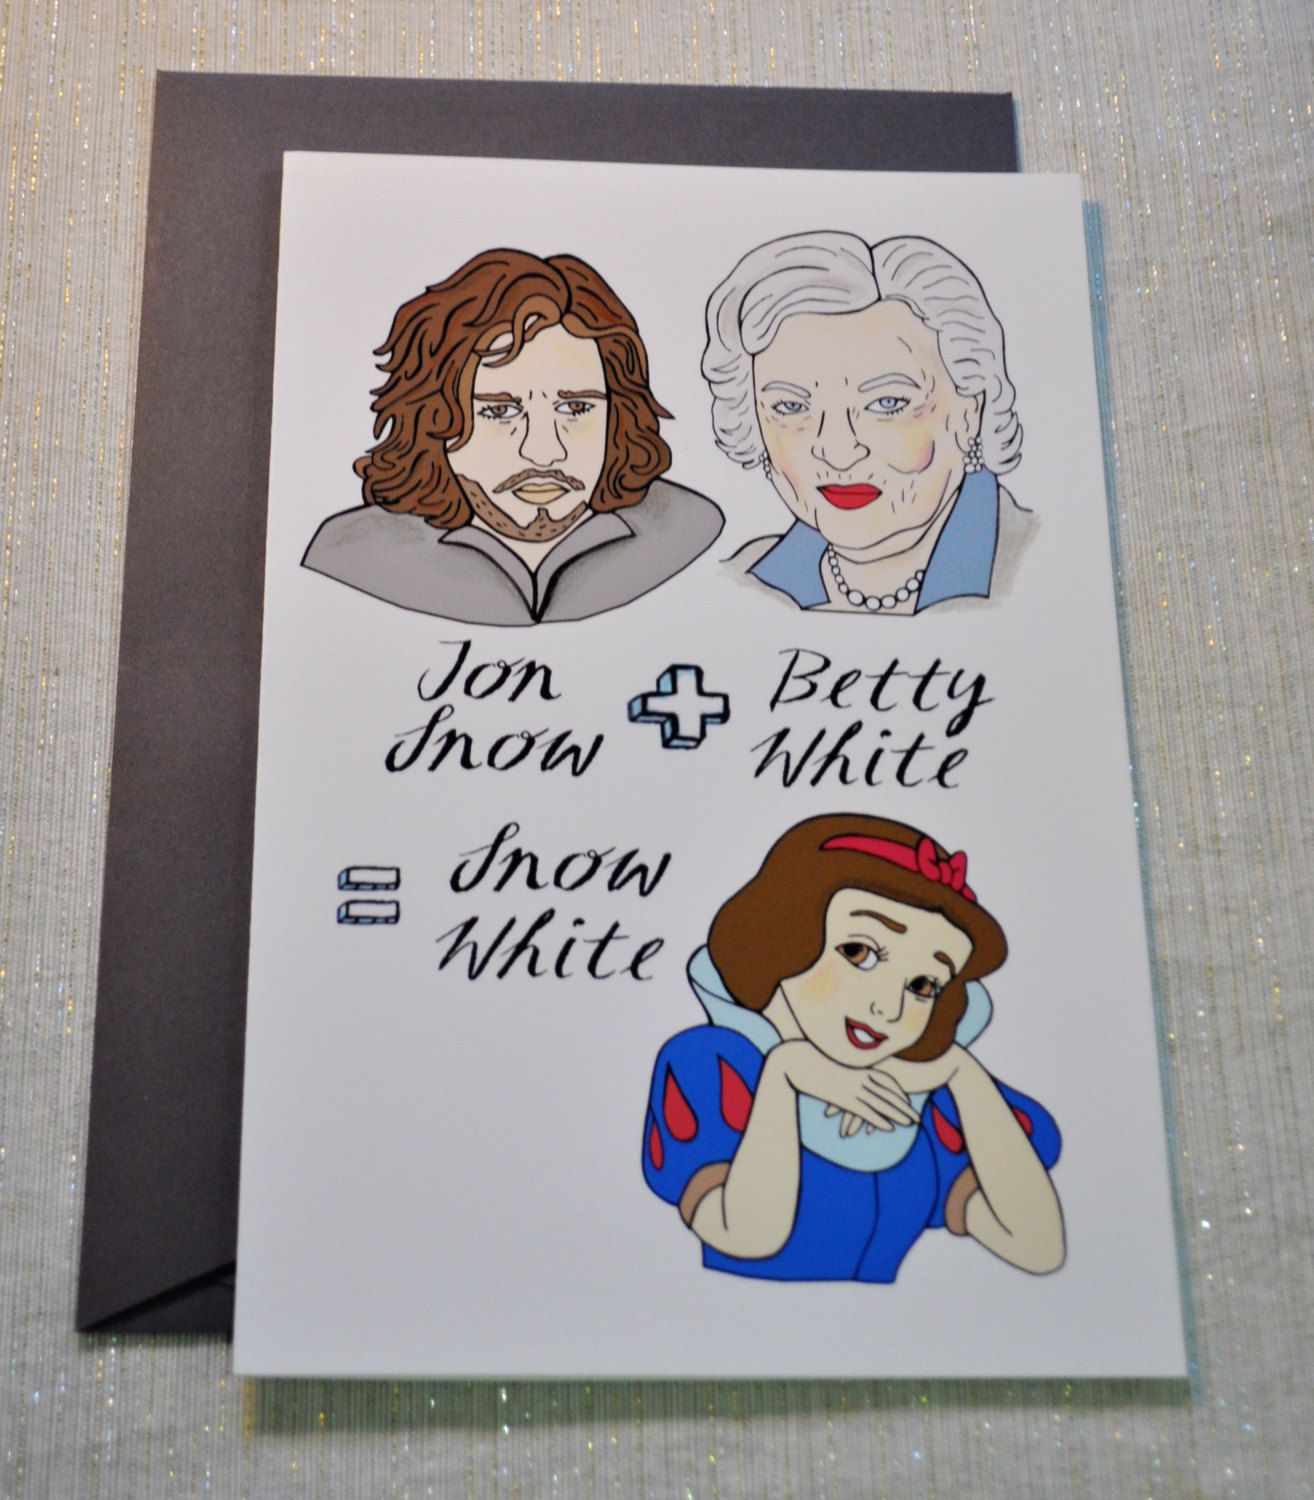 Jon Snow of Game of Thrones plus Betty White equal Snow White